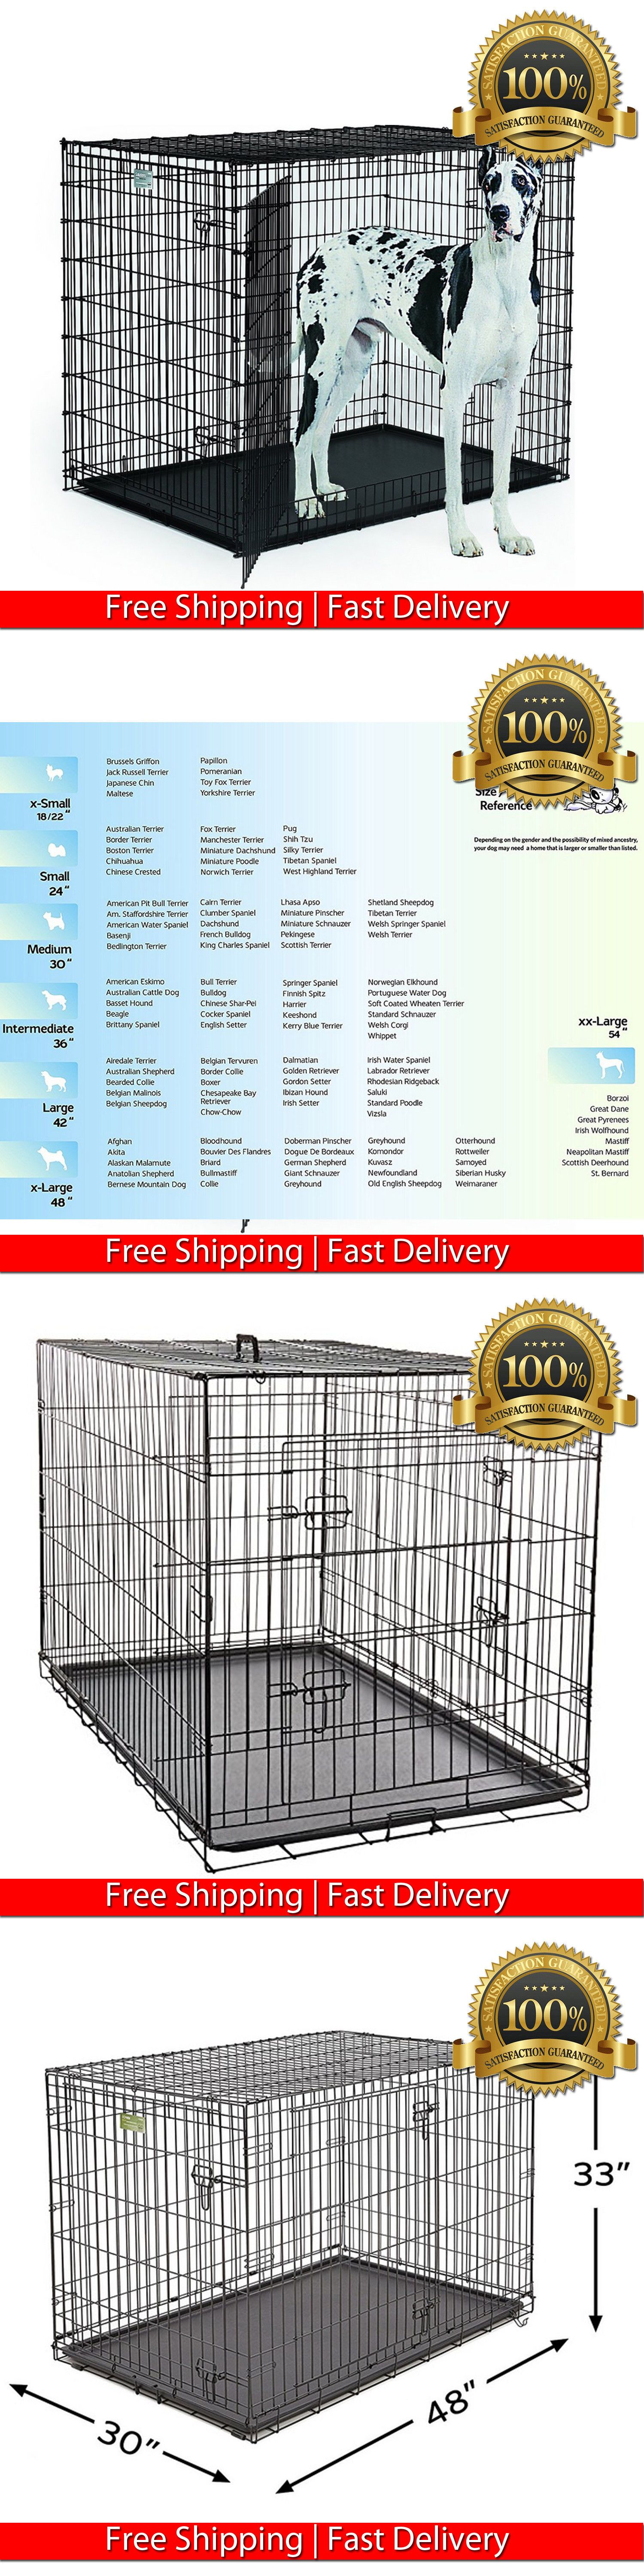 Cages And Crates 121851 Xxl Dog Kennel Crate 48 Foldable Cage And Pan Extra Large Pet Indoor House 2 Door Bu Xxl Dog Kennel Diy Dog Kennel Metal Dog Kennel